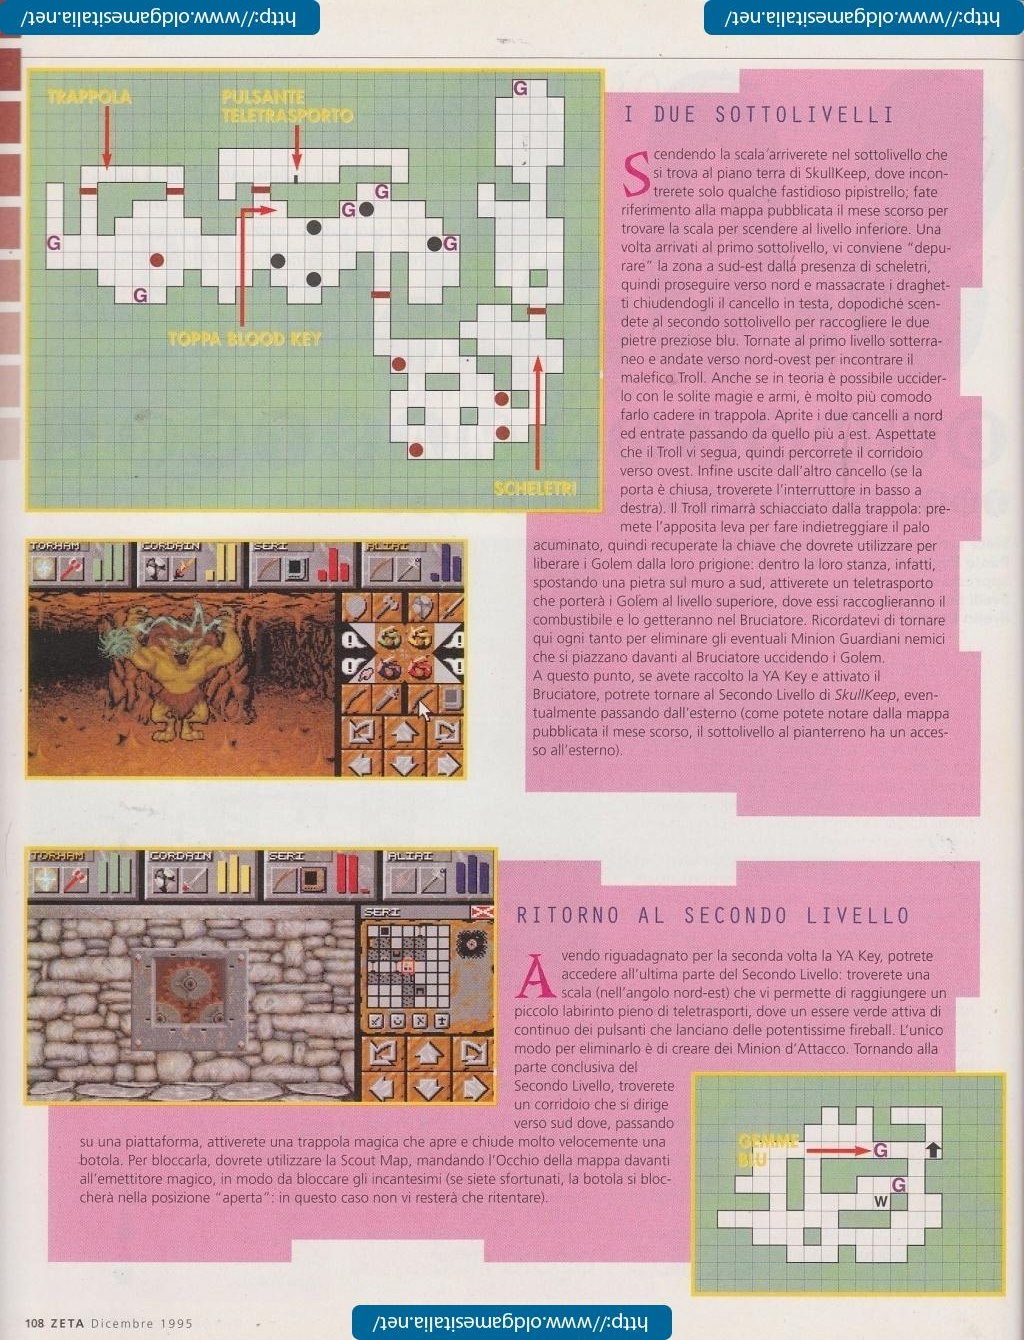 Dungeon Master II Guide published in Italian magazine 'Zeta', Issue #10 December 1995, Page 108